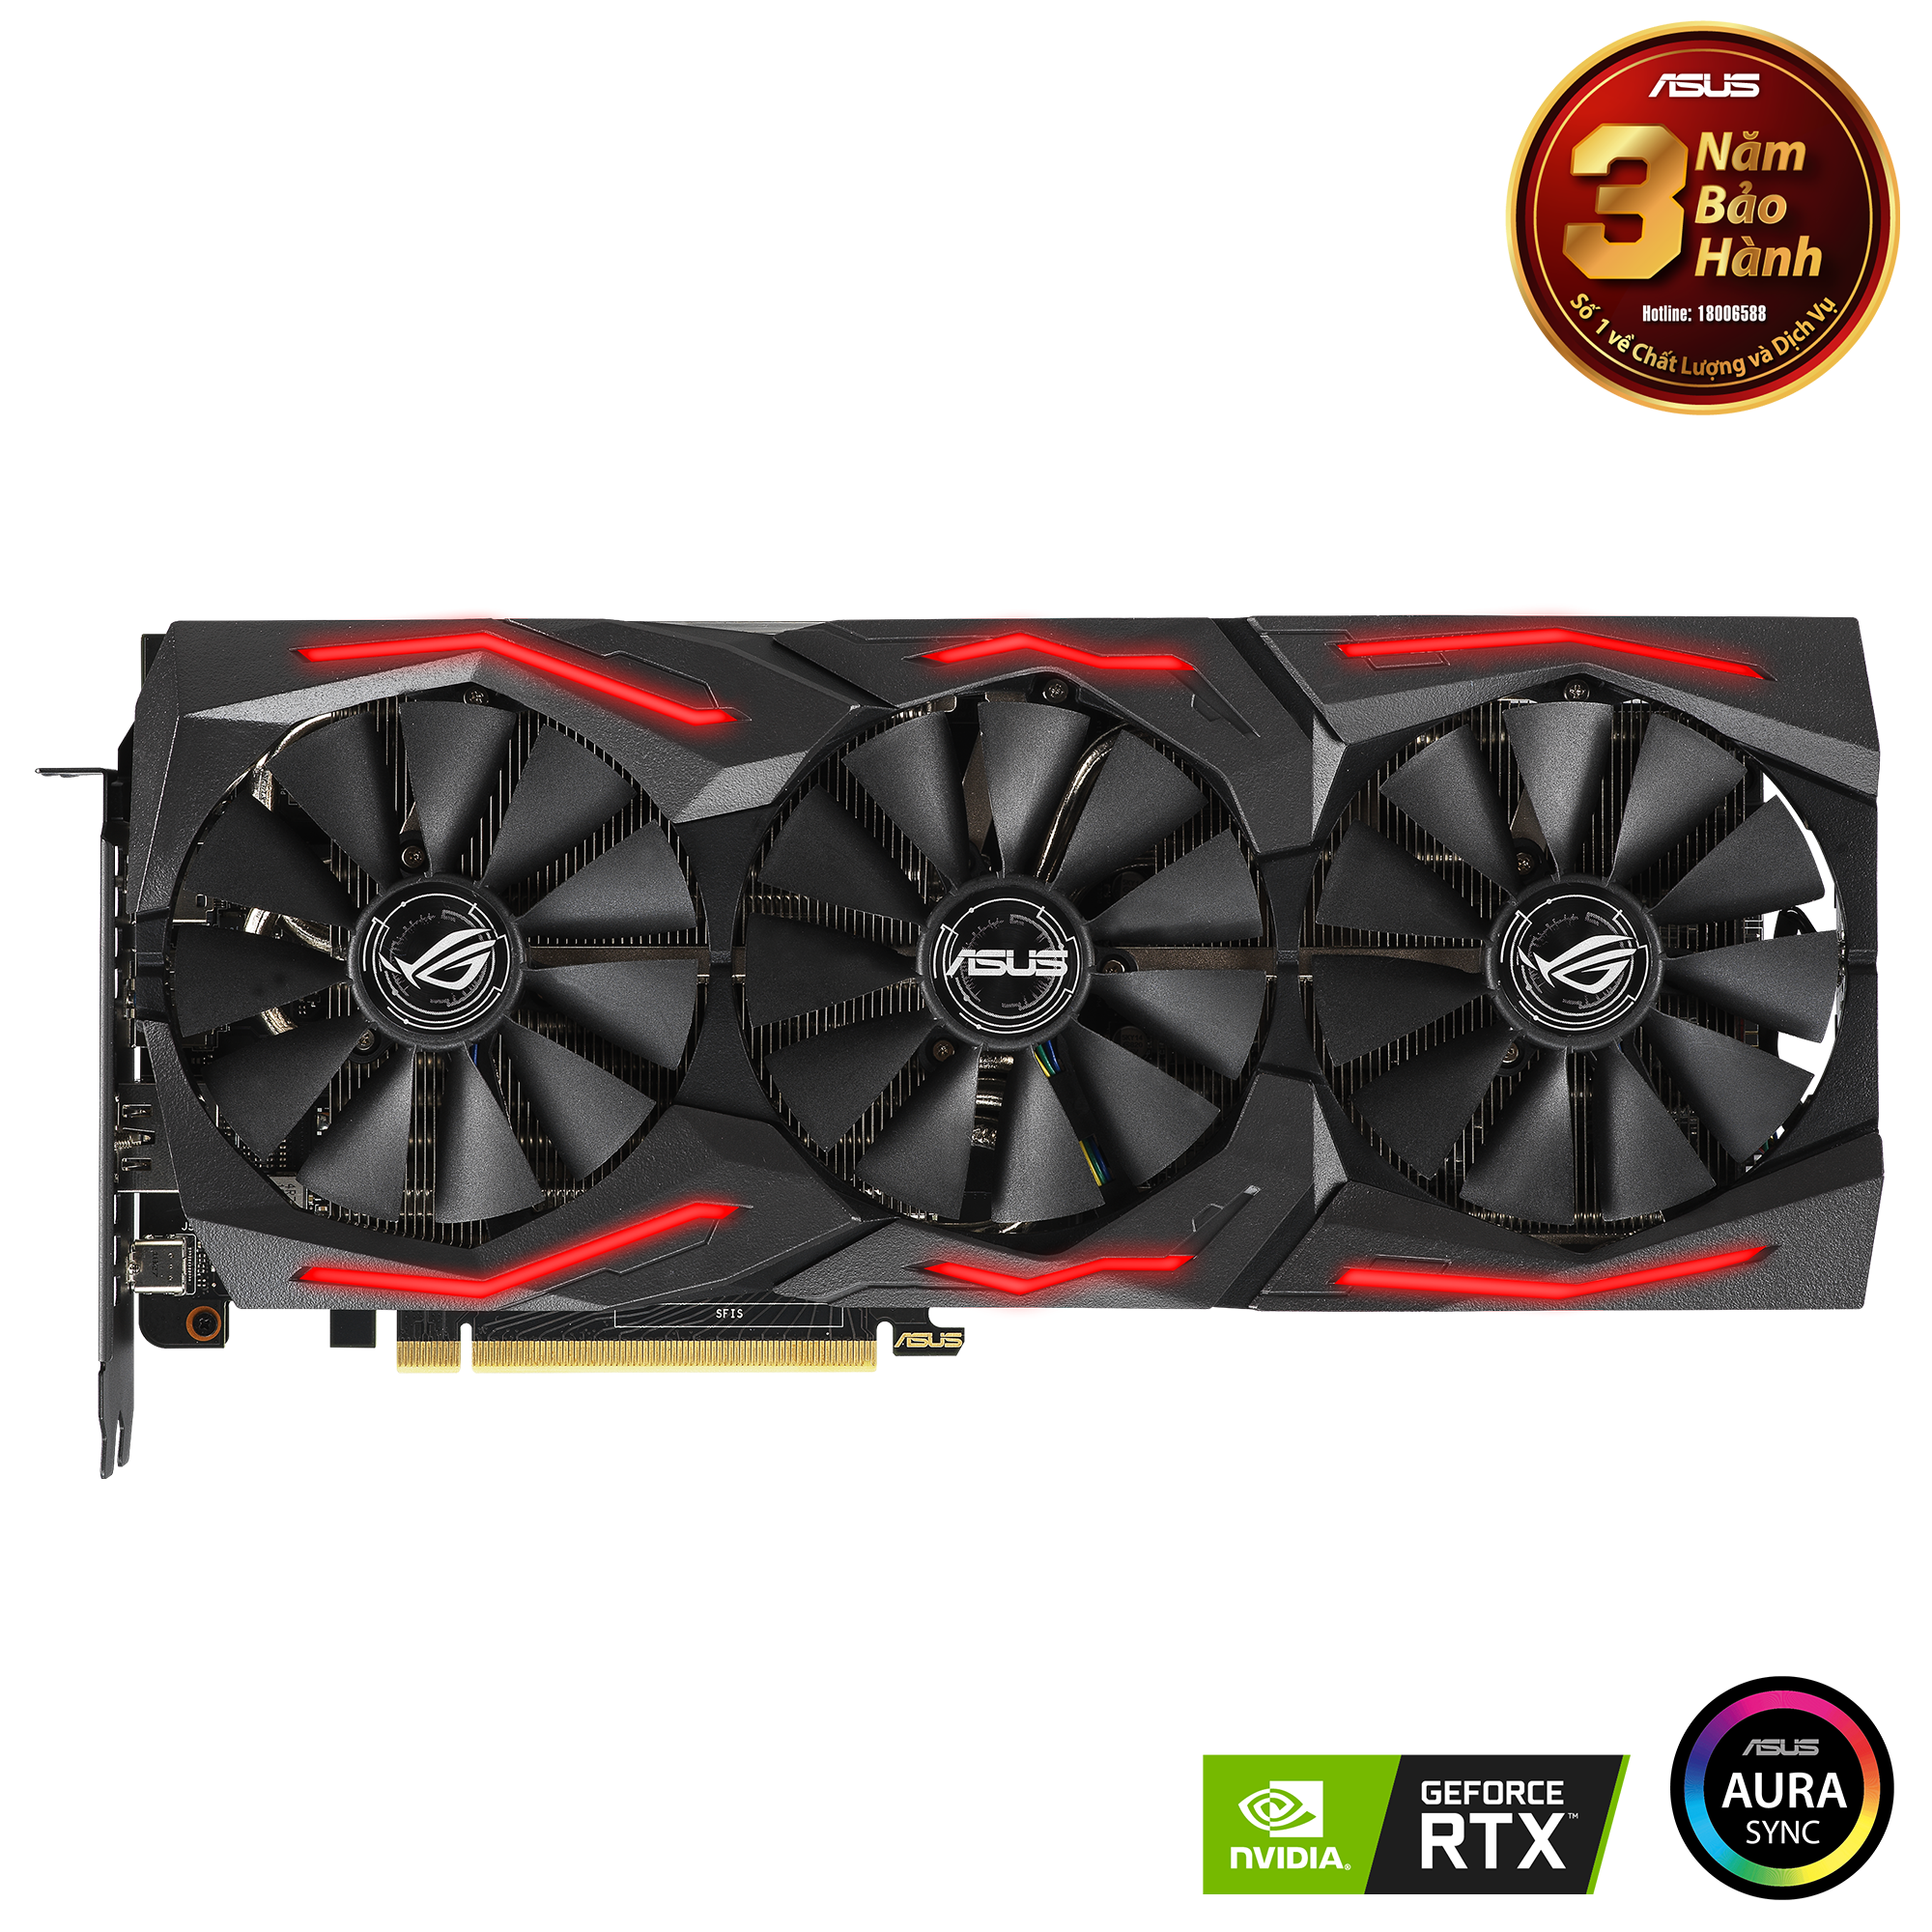 VGA Card Asus ROG-STRIX-RTX 2060S-O8G-GAMING